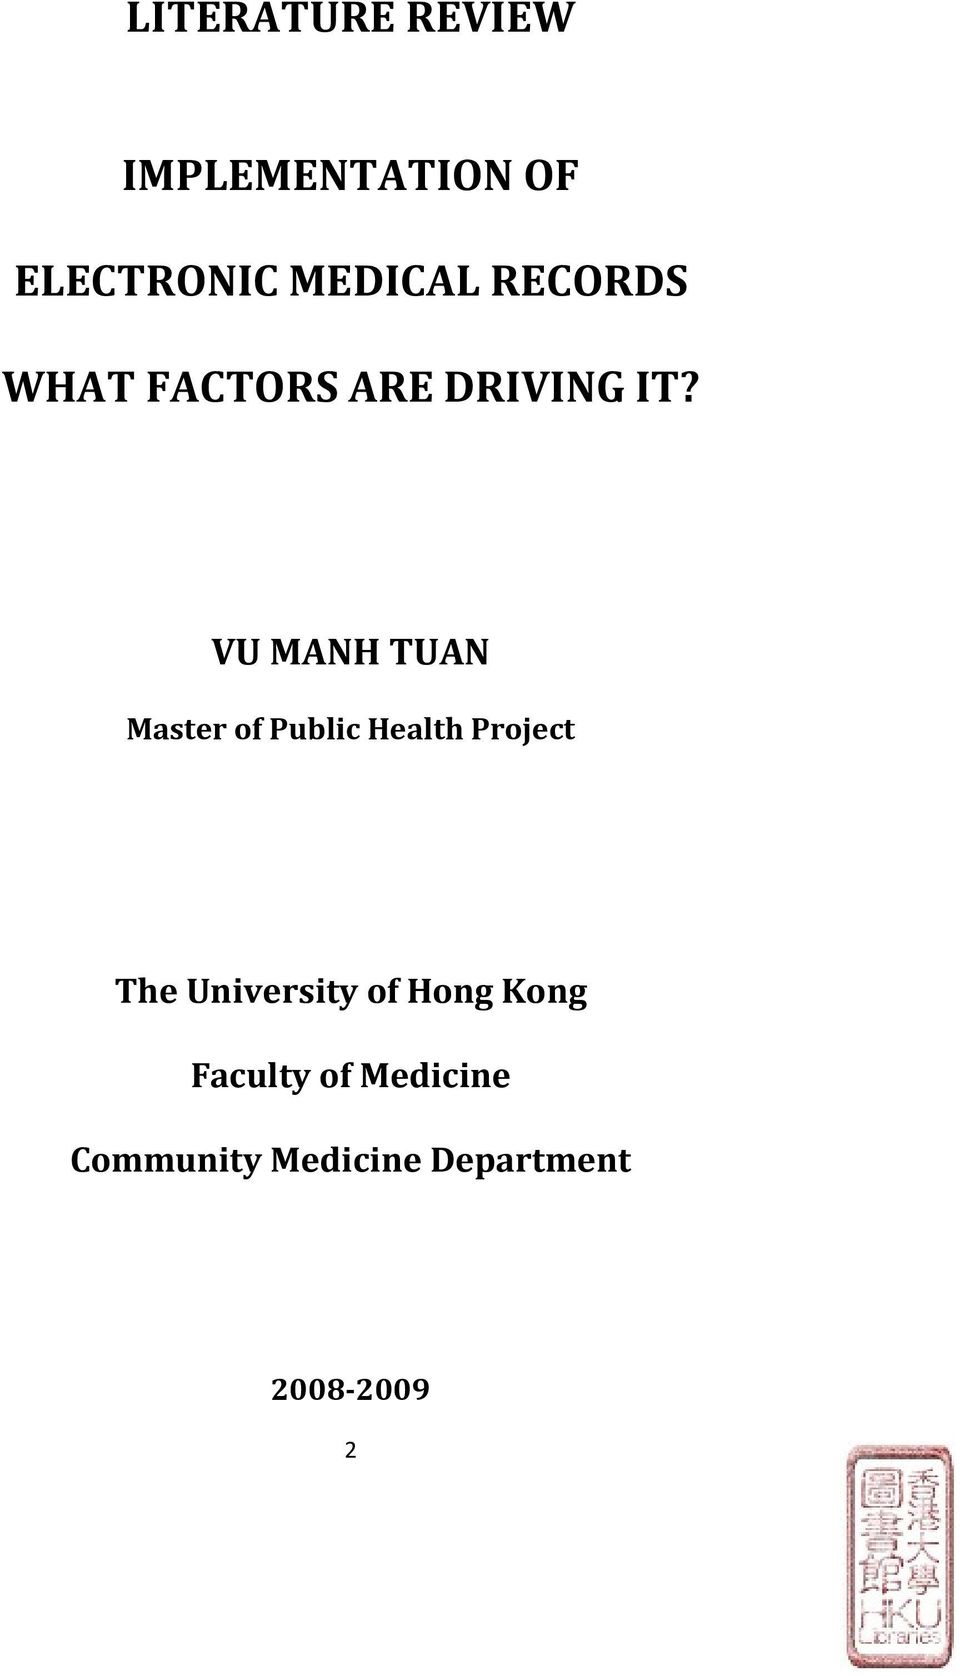 VU MANH TUAN Master of Public Health Project The